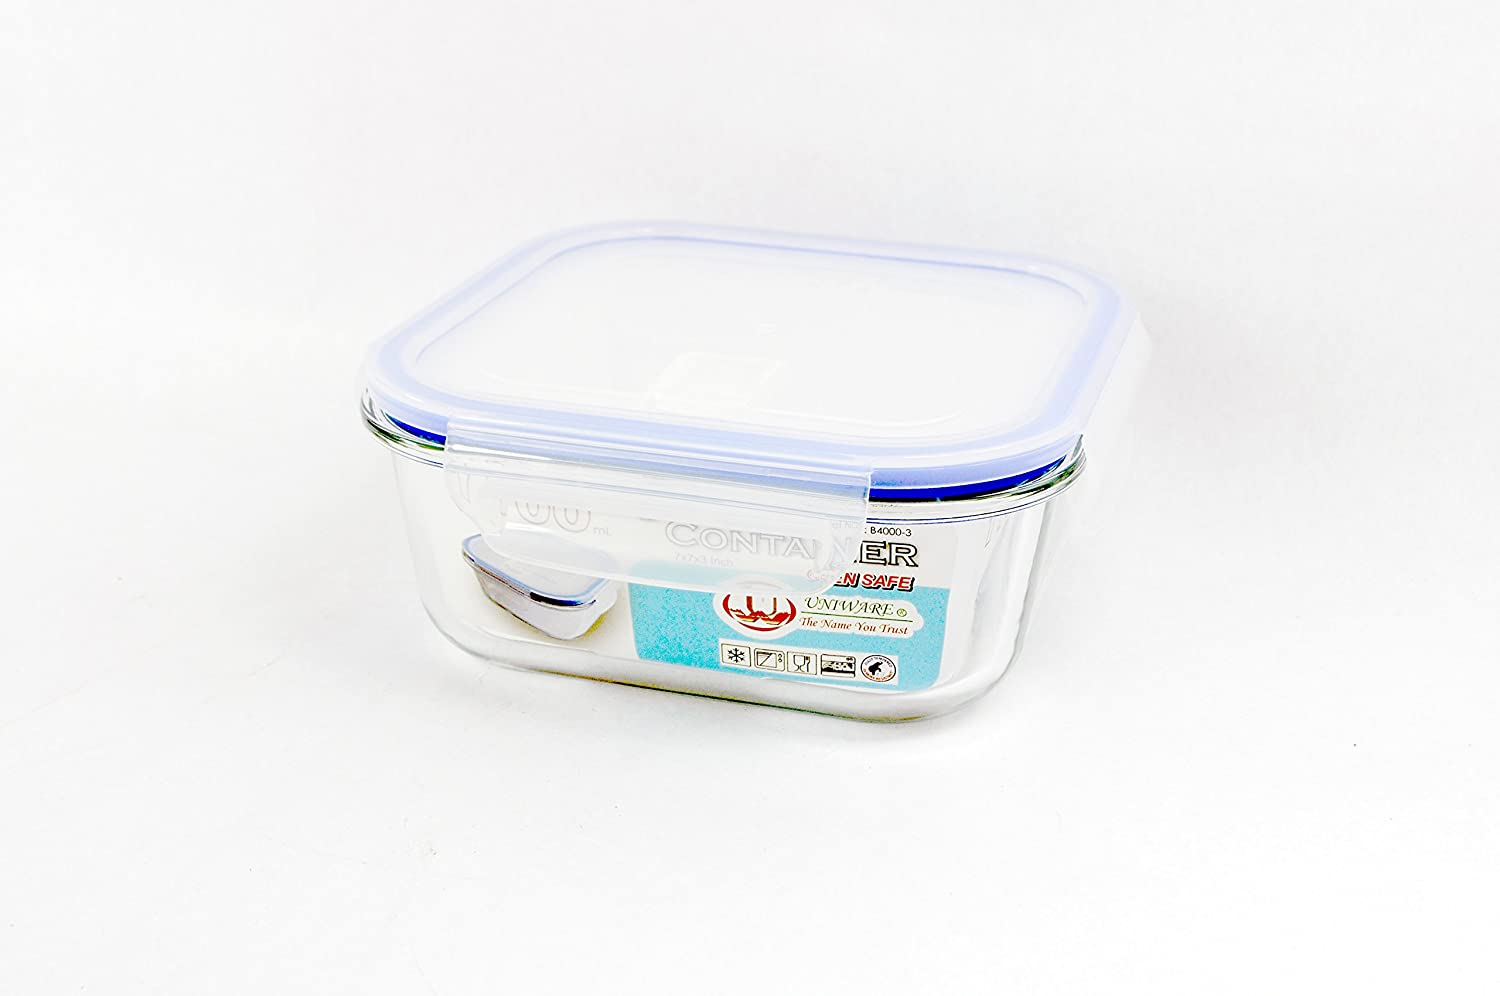 Uniware B4000-1 Heat Resistant Premium Glass Food Container with Snap-Lock Lid (SQUARE) (18 OZ), Clear